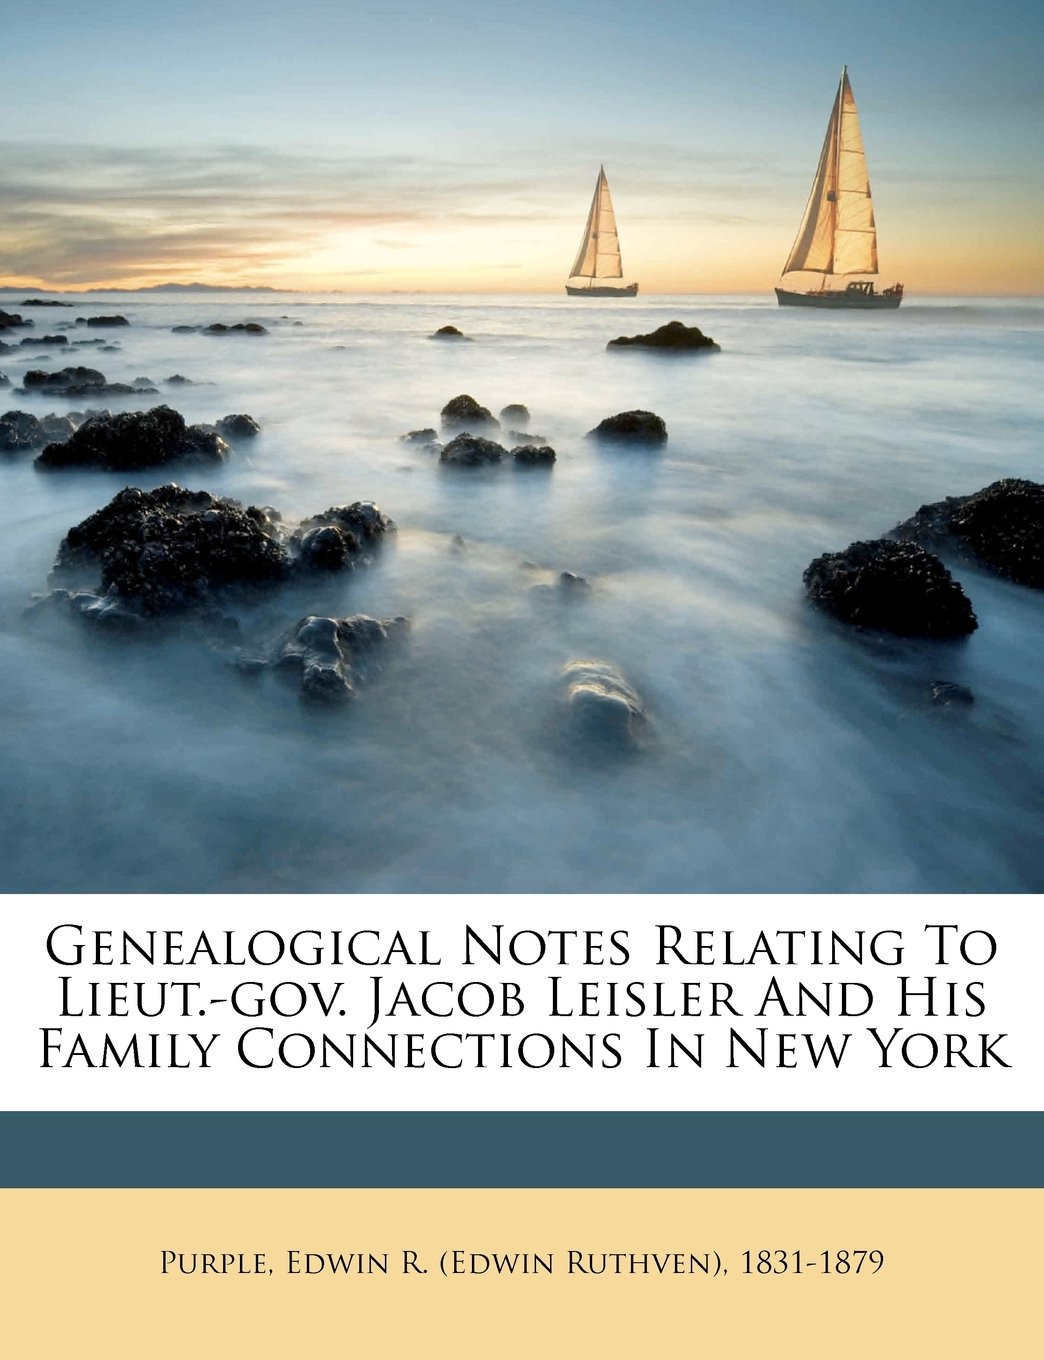 Download Genealogical Notes Relating To Lieut.-gov. Jacob Leisler And His Family Connections In New York pdf